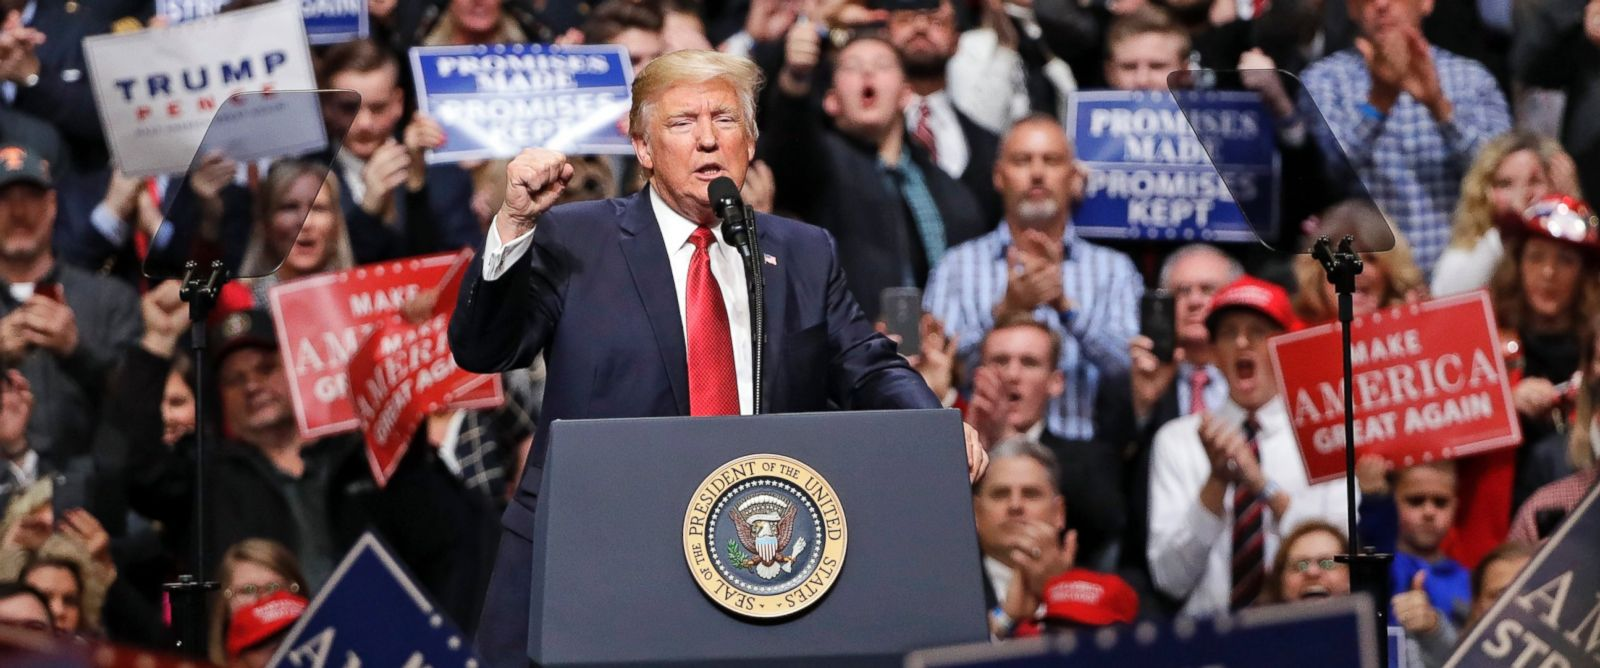 PHOTO: President Donald Trump speaks at a rally, March 15, 2017, in Nashville, Tenn.